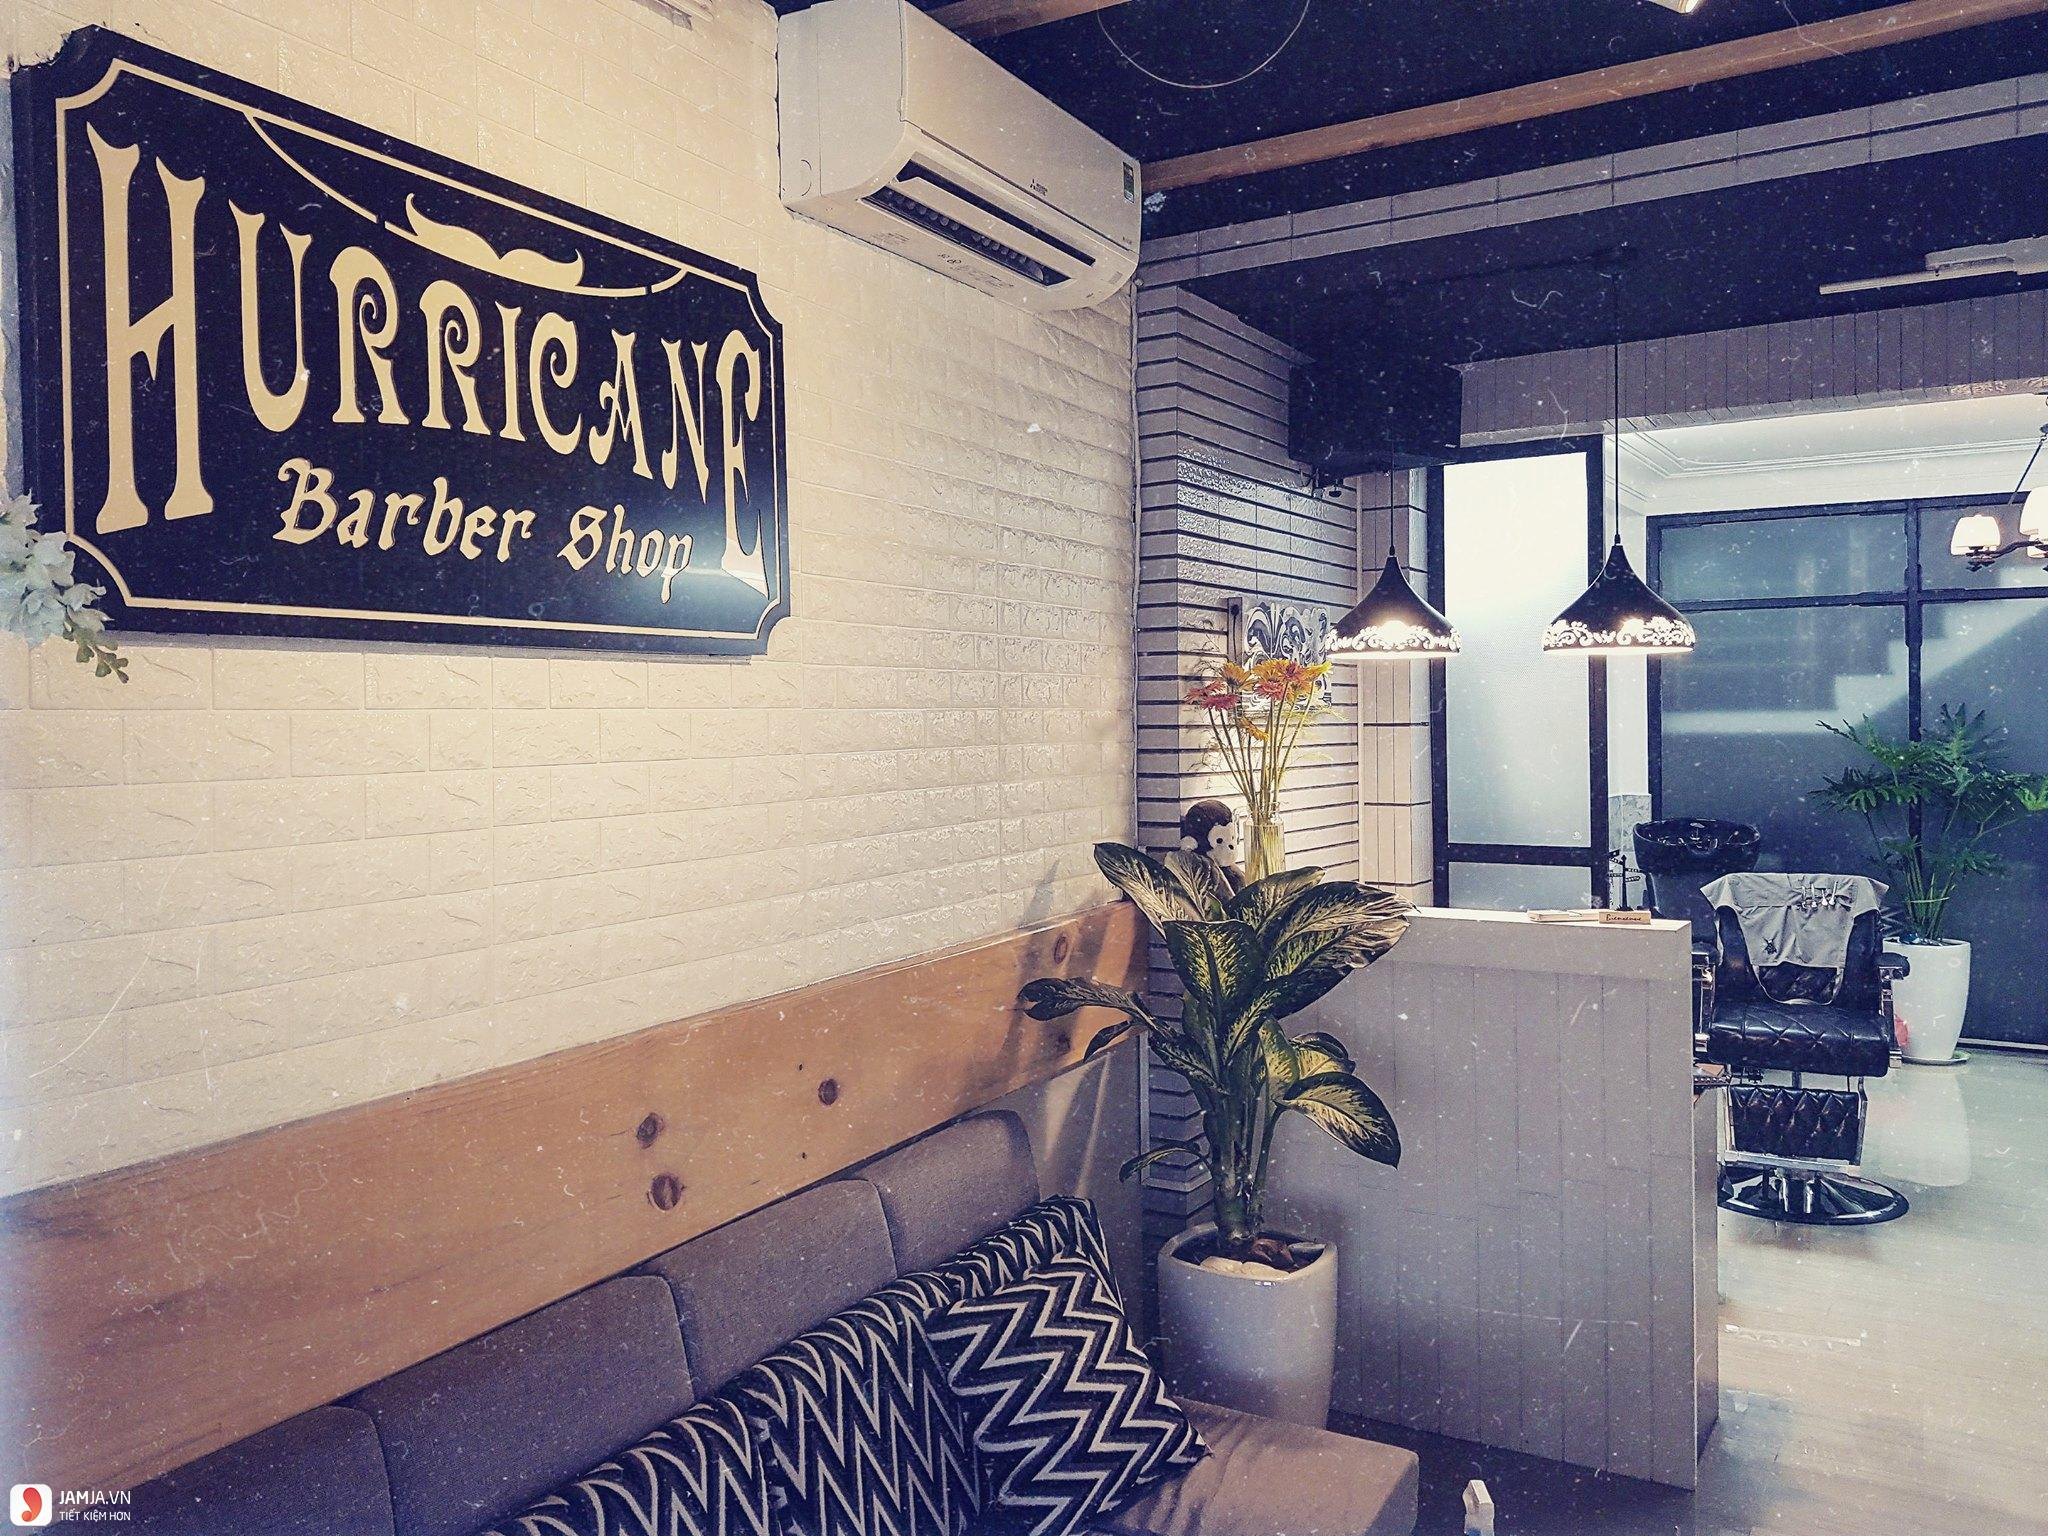 Hurricane Barber Shop